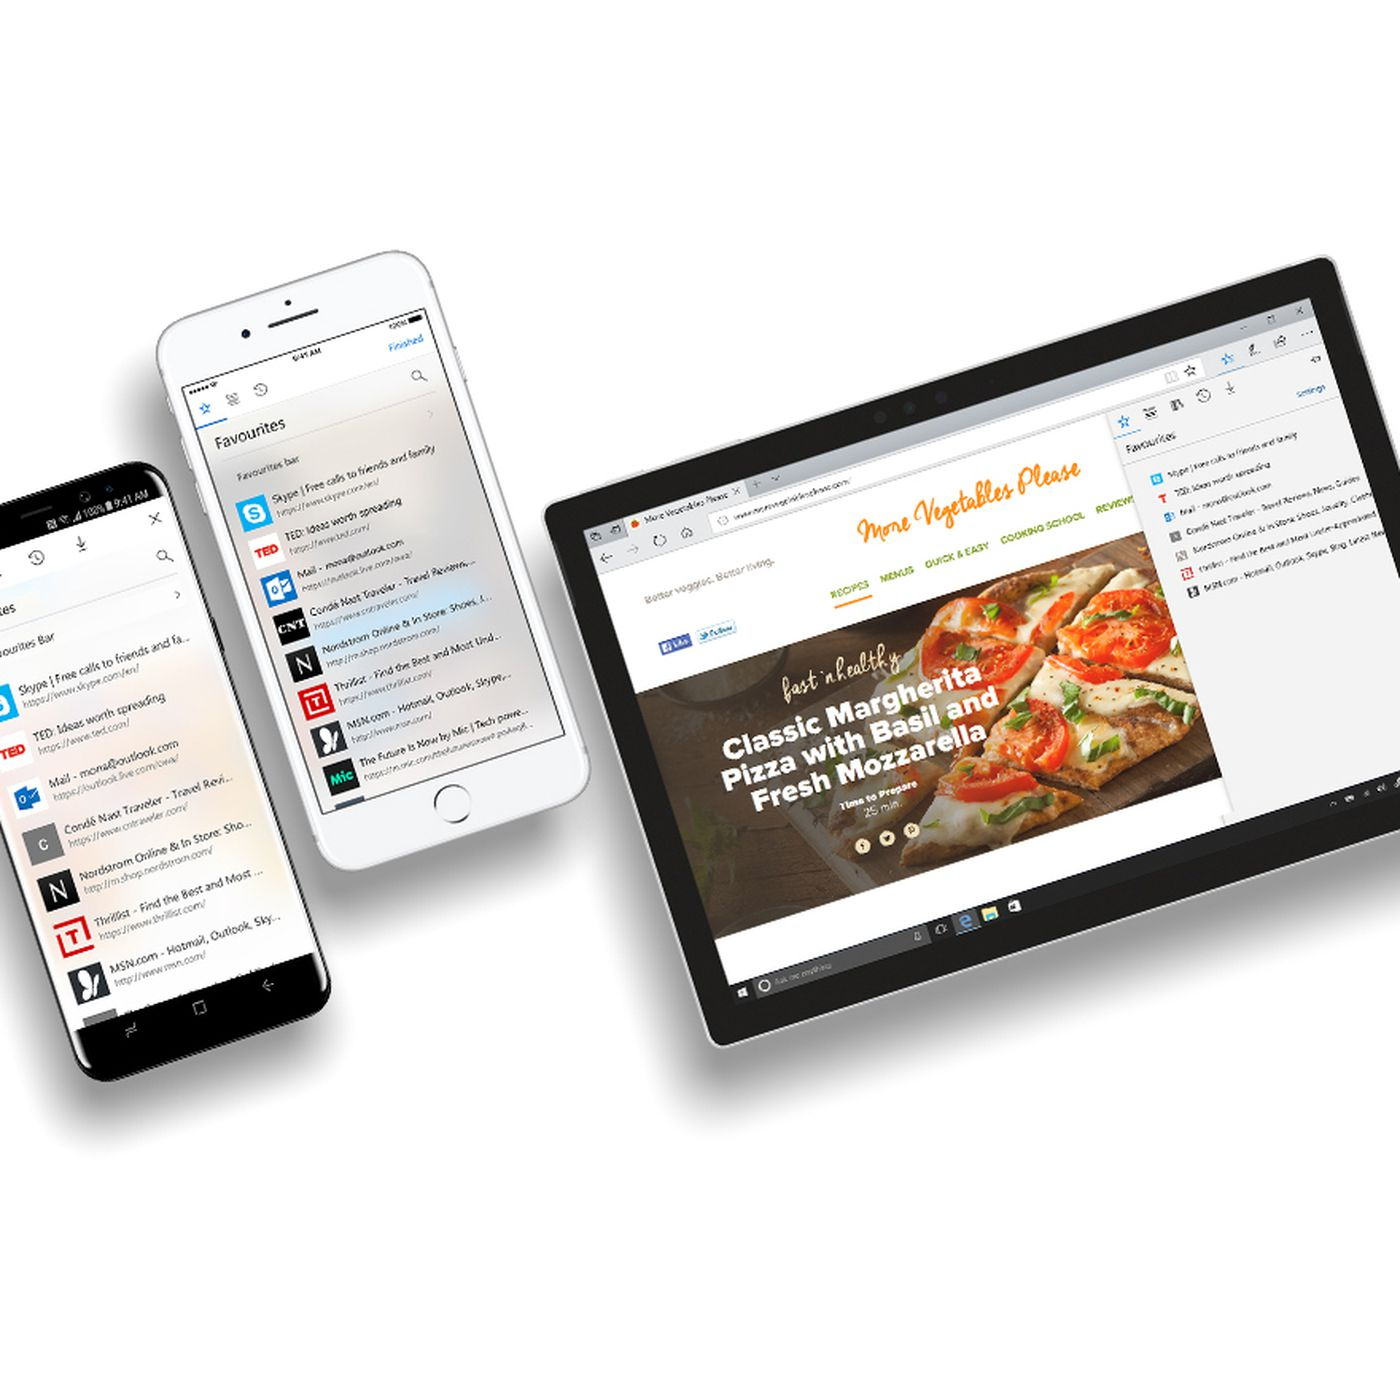 Microsoft Edge for iOS and Android now comes with a built-in